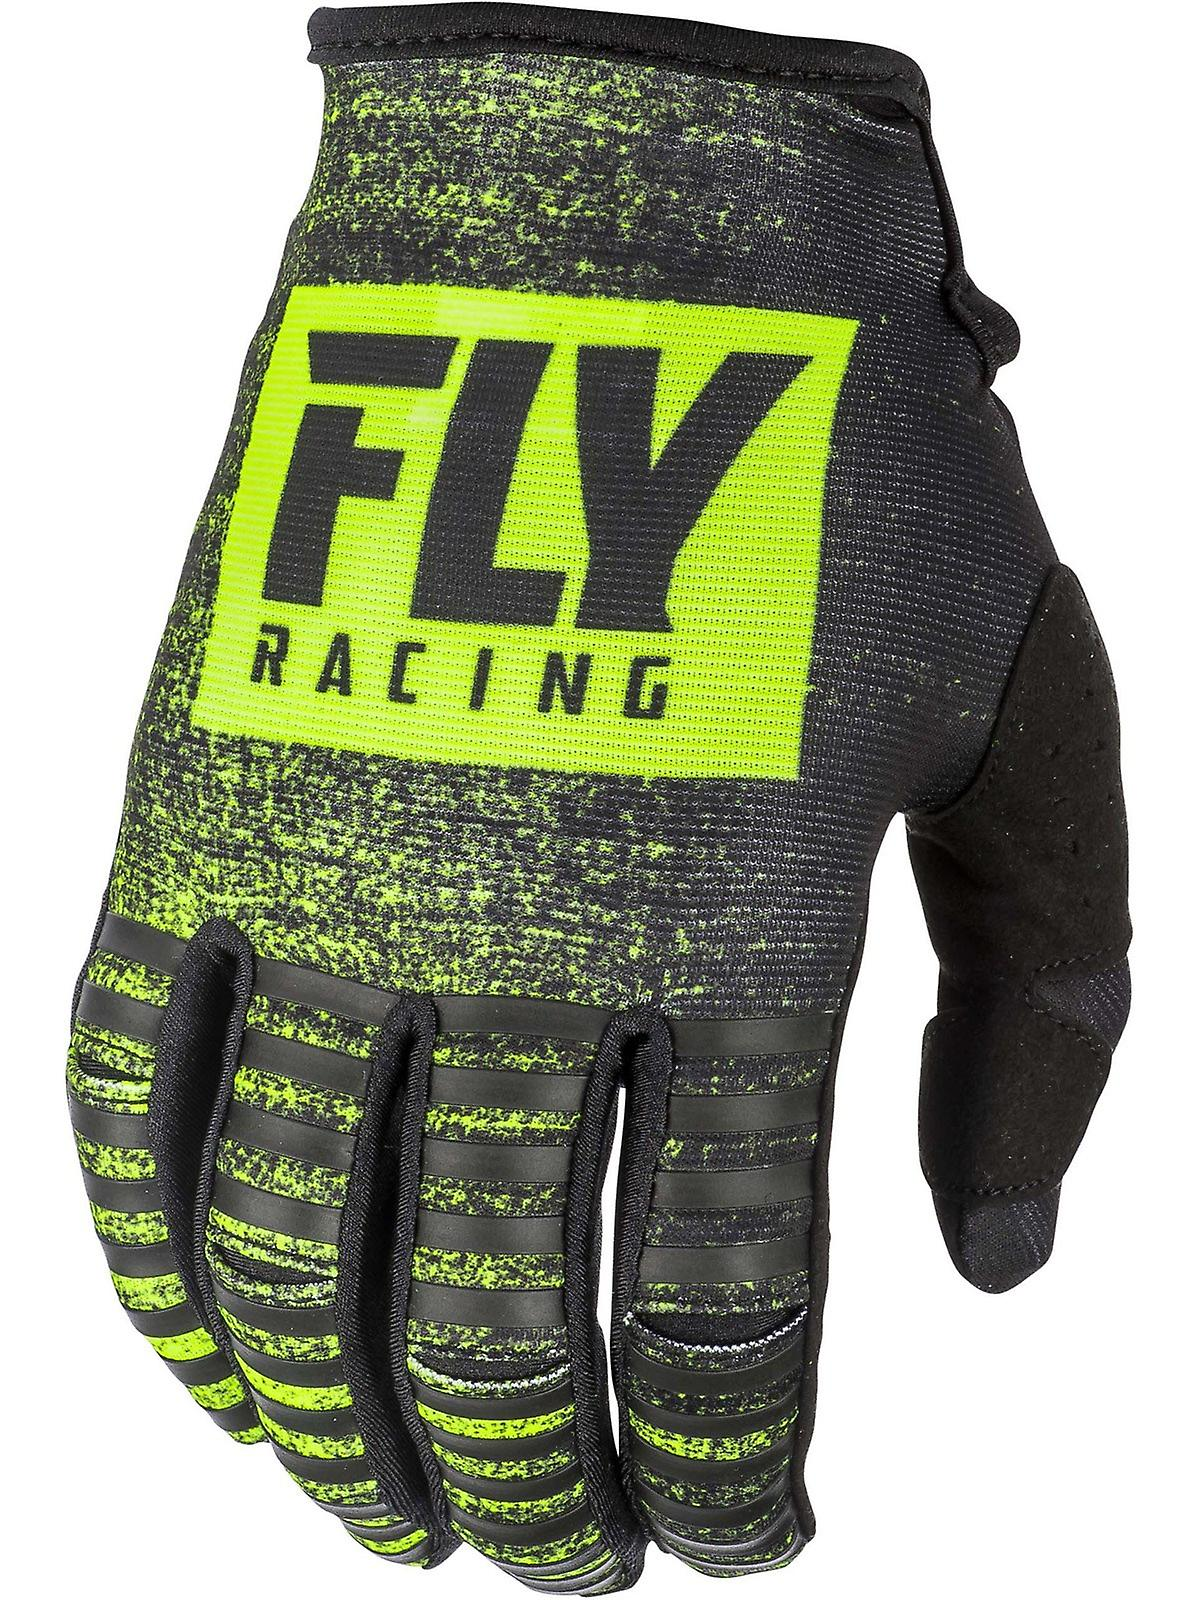 Race Sillas Bebe 2019 Fly Racing Black Hi Vis 2019 Kinetic Noiz Mx Gloves